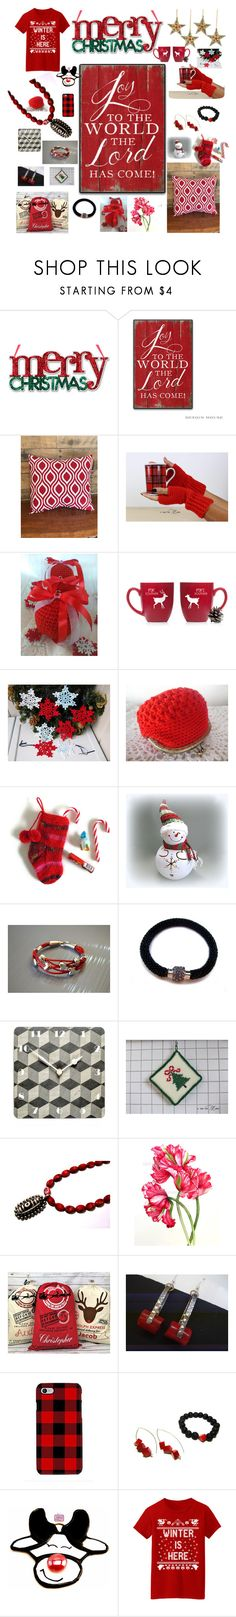 """""""Christmas Gift Collection"""" by monique-eves ❤ liked on Polyvore featuring interior, interiors, interior design, home, home decor, interior decorating and Samsung"""